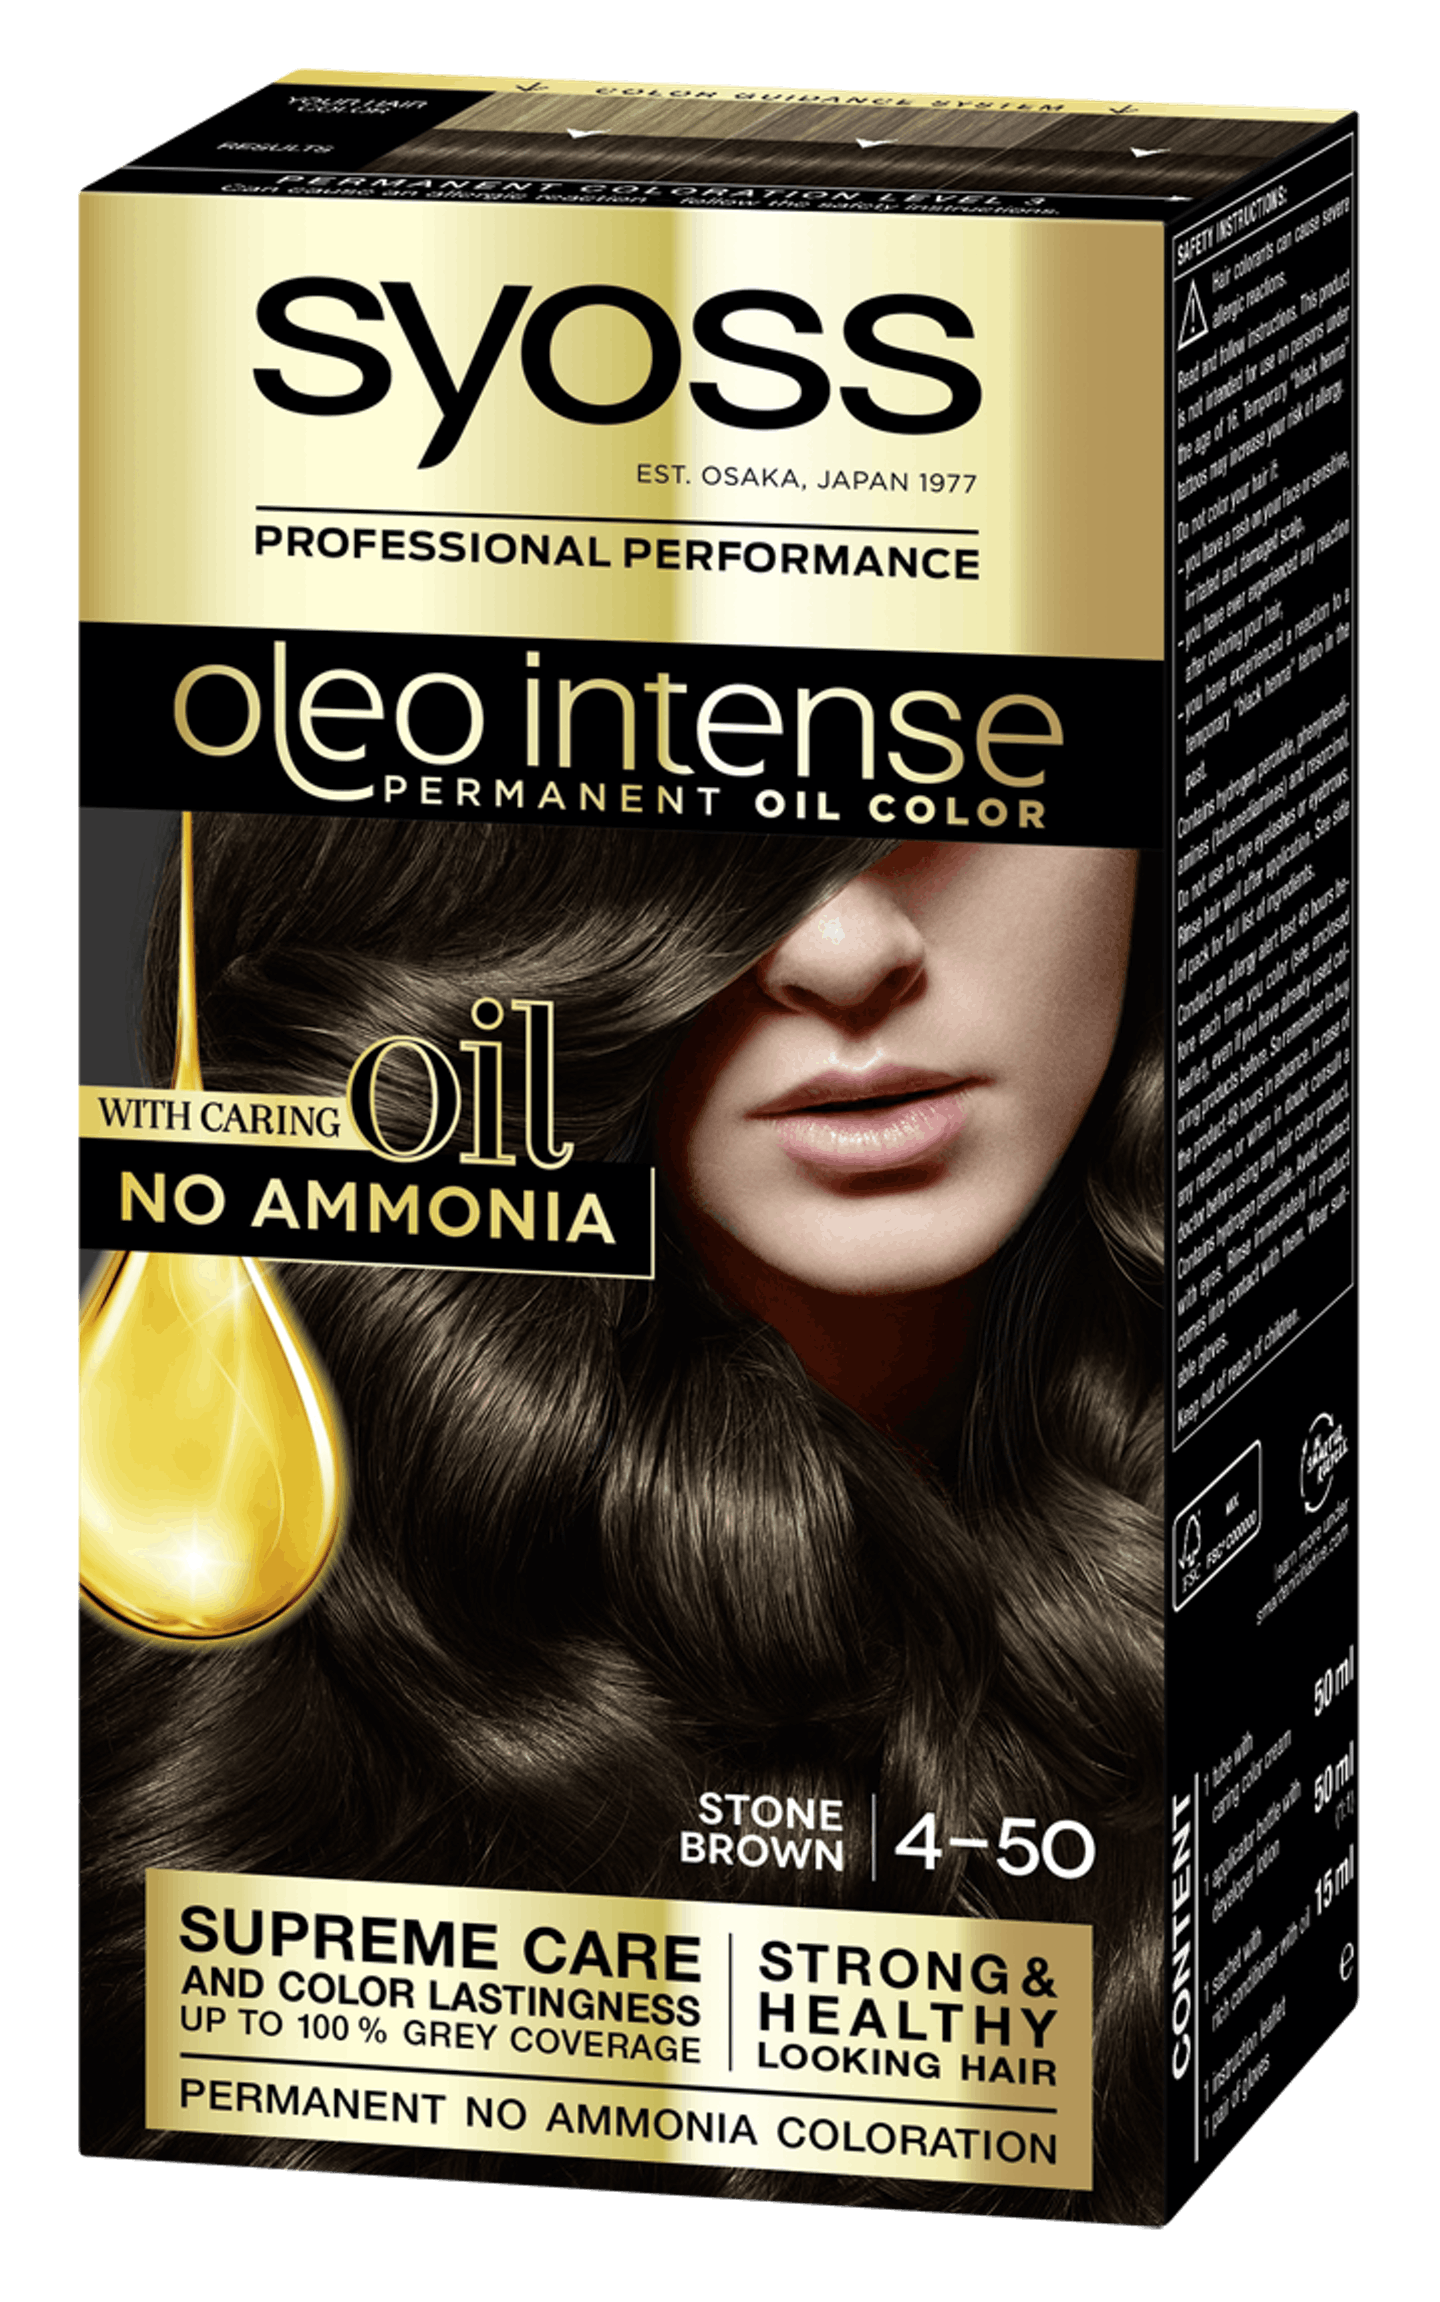 Syoss Oleo Intense Permanent Oil Color 4-50 Stone Brown